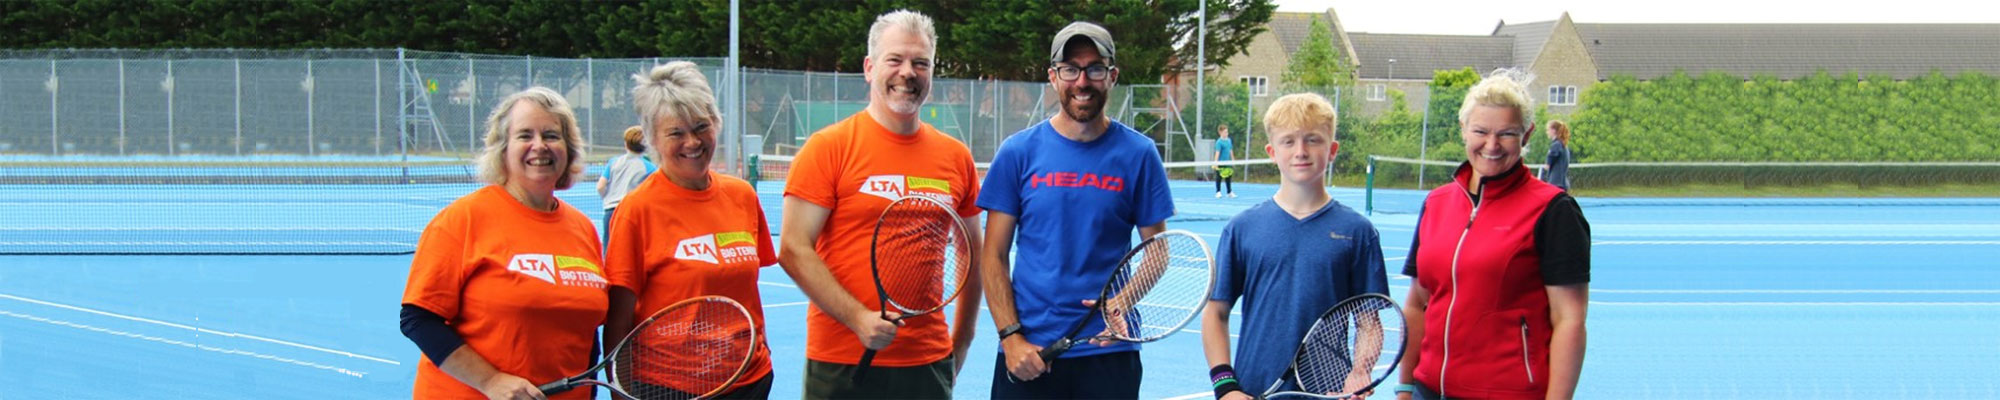 Members of Wells Tennis Club standing on a blue court